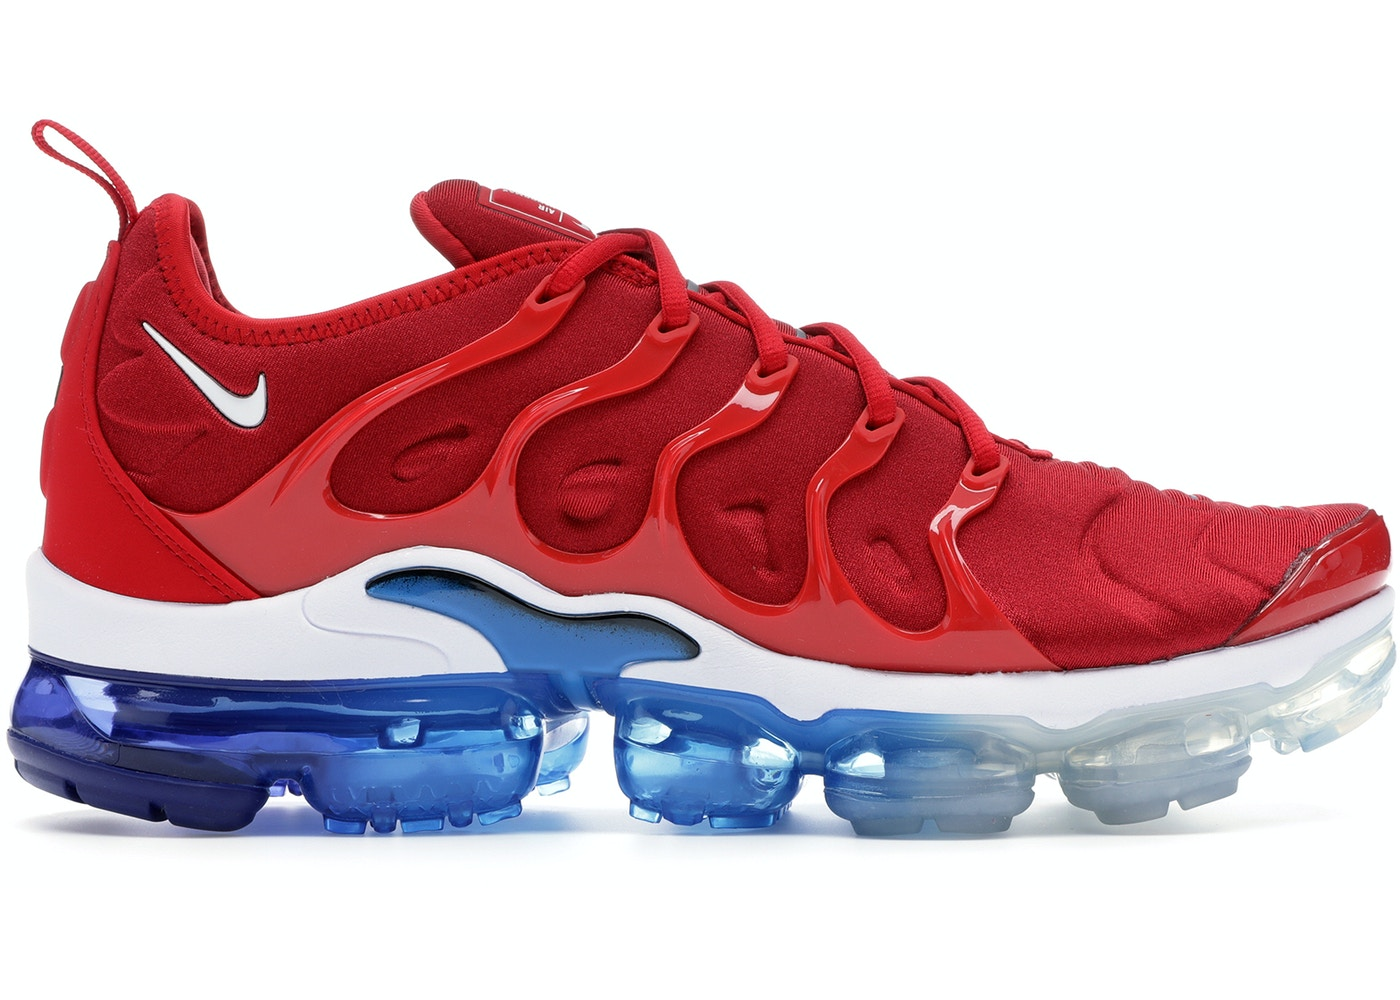 54063baae4f4e Air VaporMax Plus USA - 924453-601